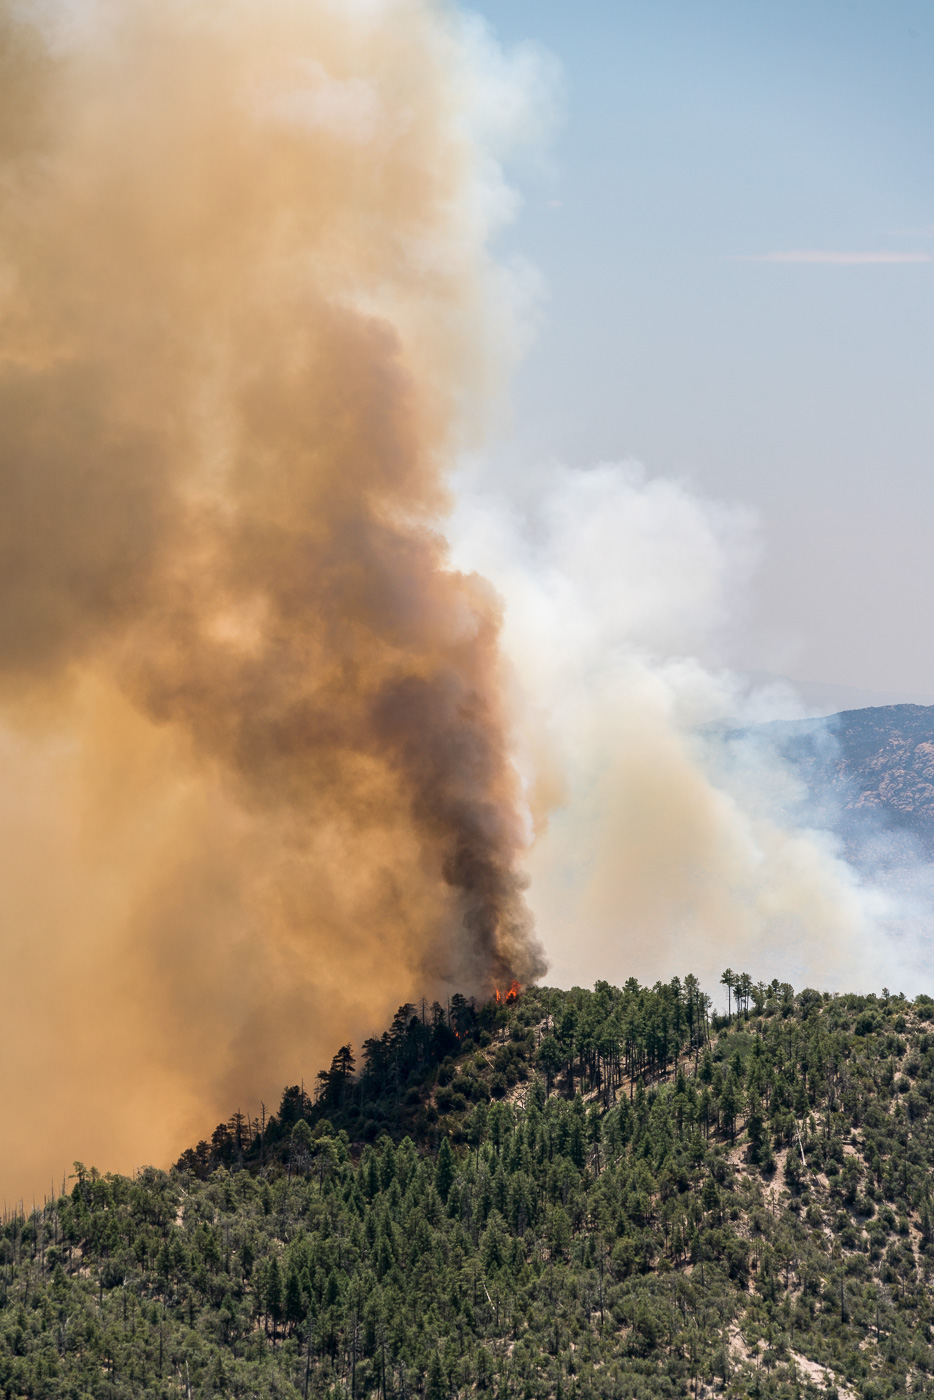 Smoke and flames from the Burro Fire. July 2017.